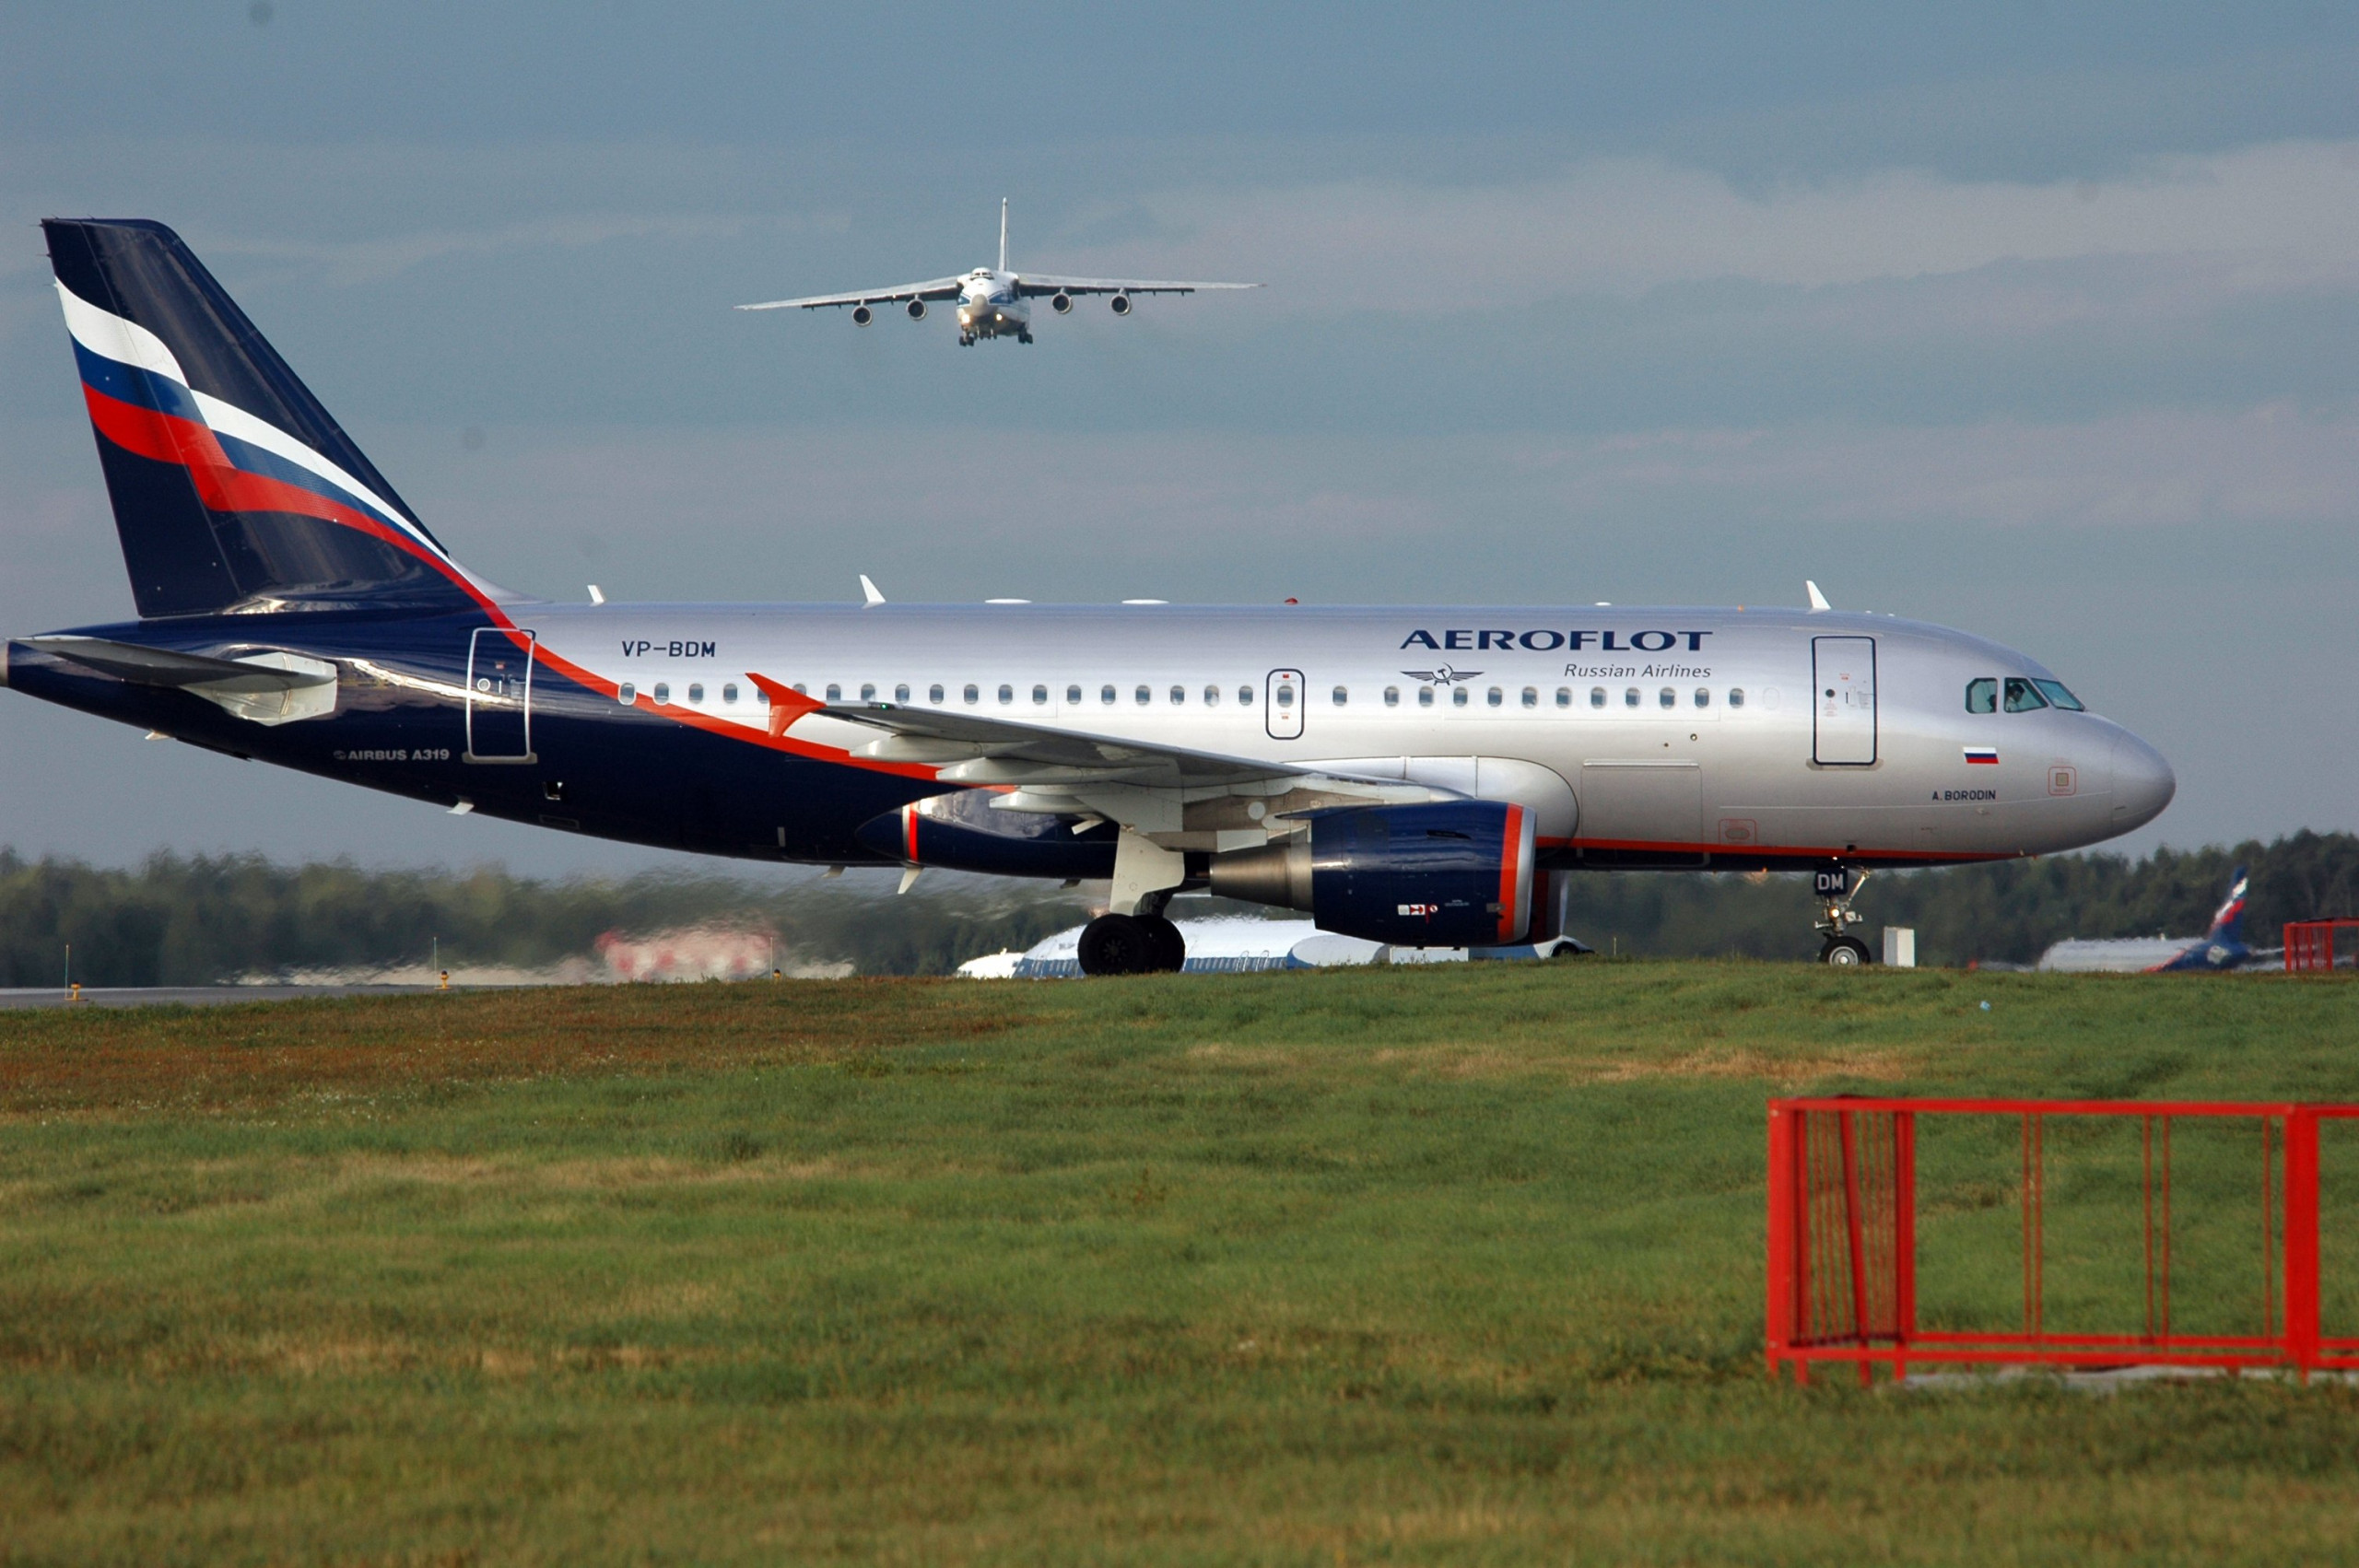 Aeroflot named the world's most punctual mainline airline in August 2021